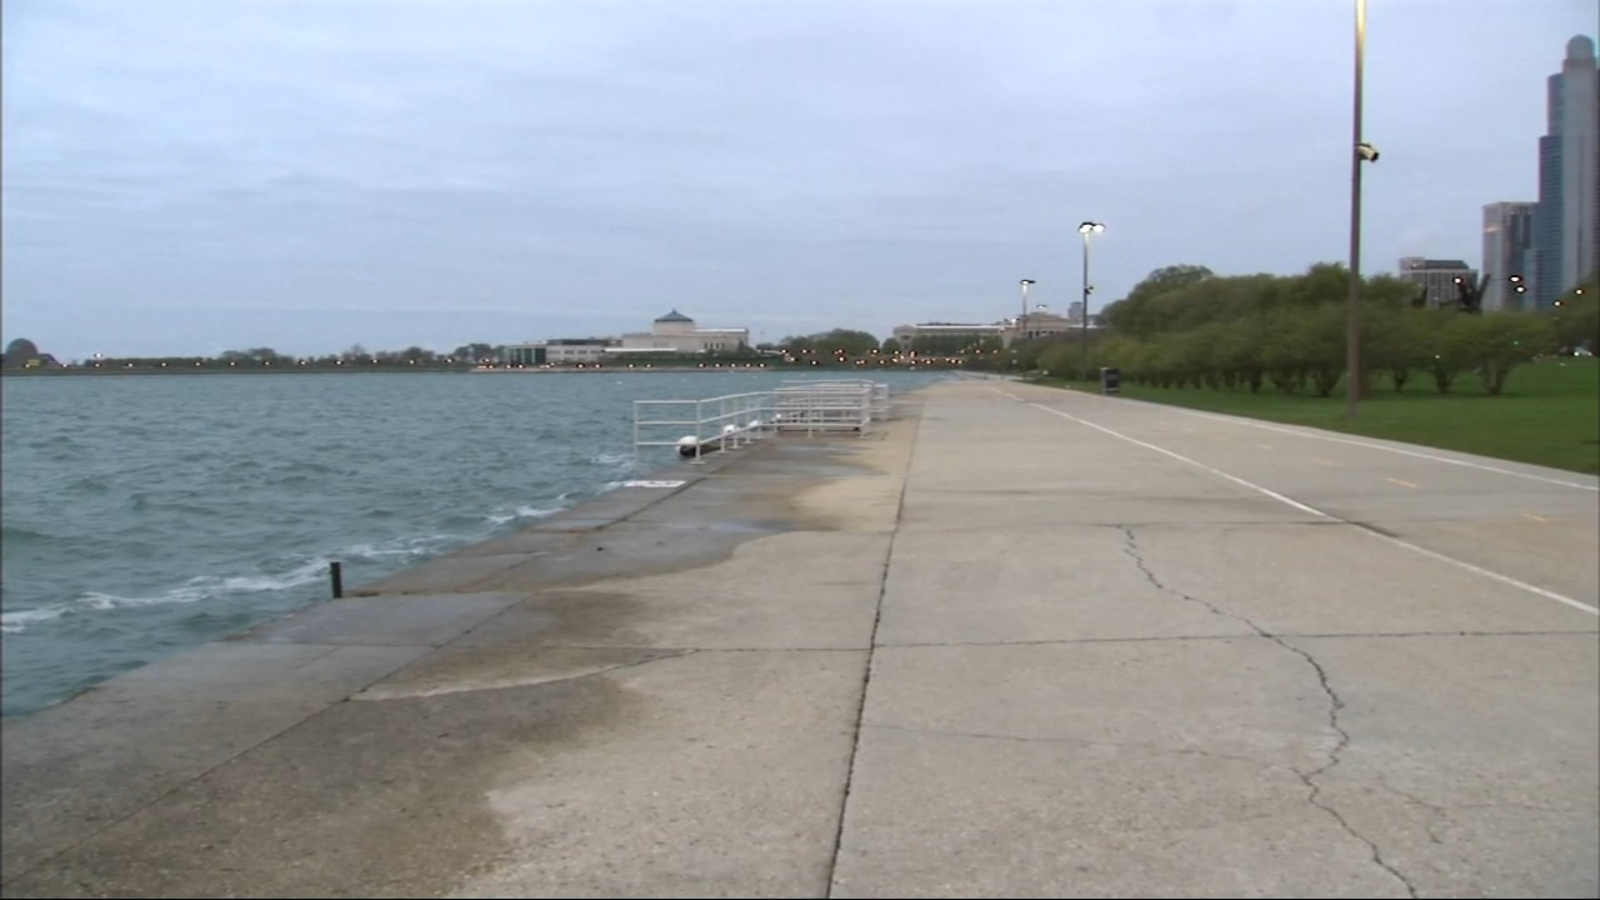 Man wanted for attempted sexual assault along lakefront in South Loop: police